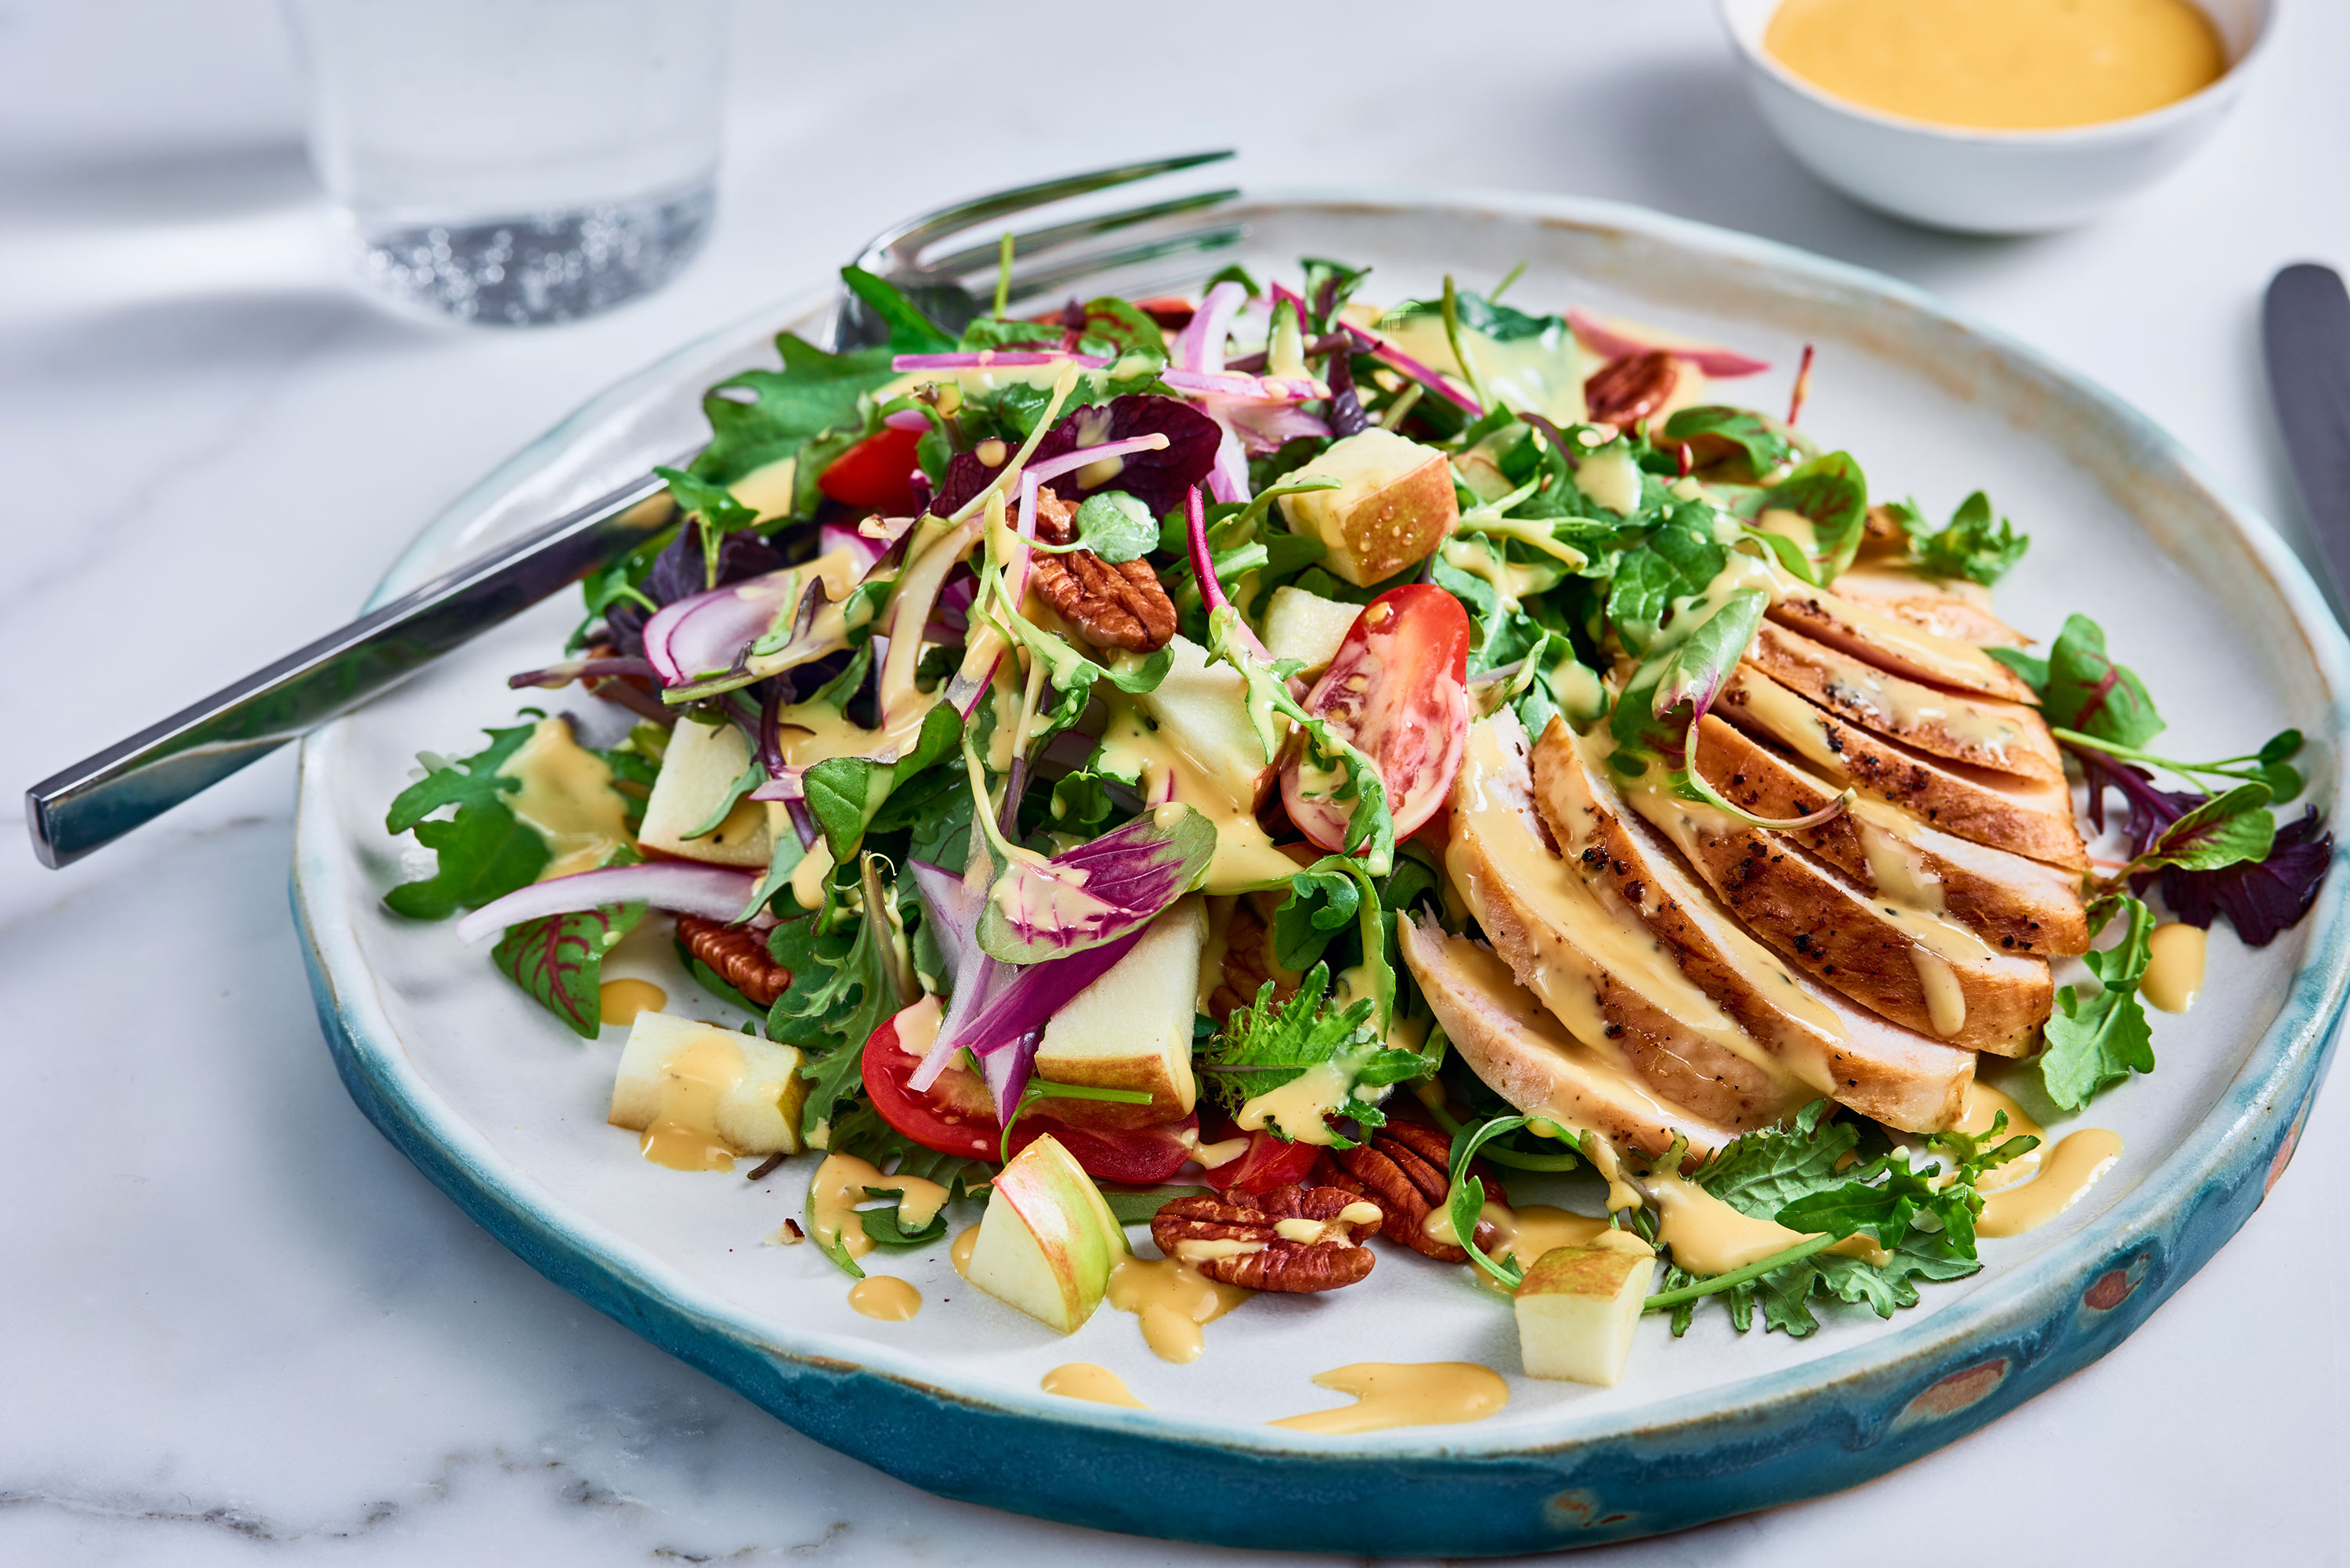 Premium salads prove health and flavor are not mutually exclusive